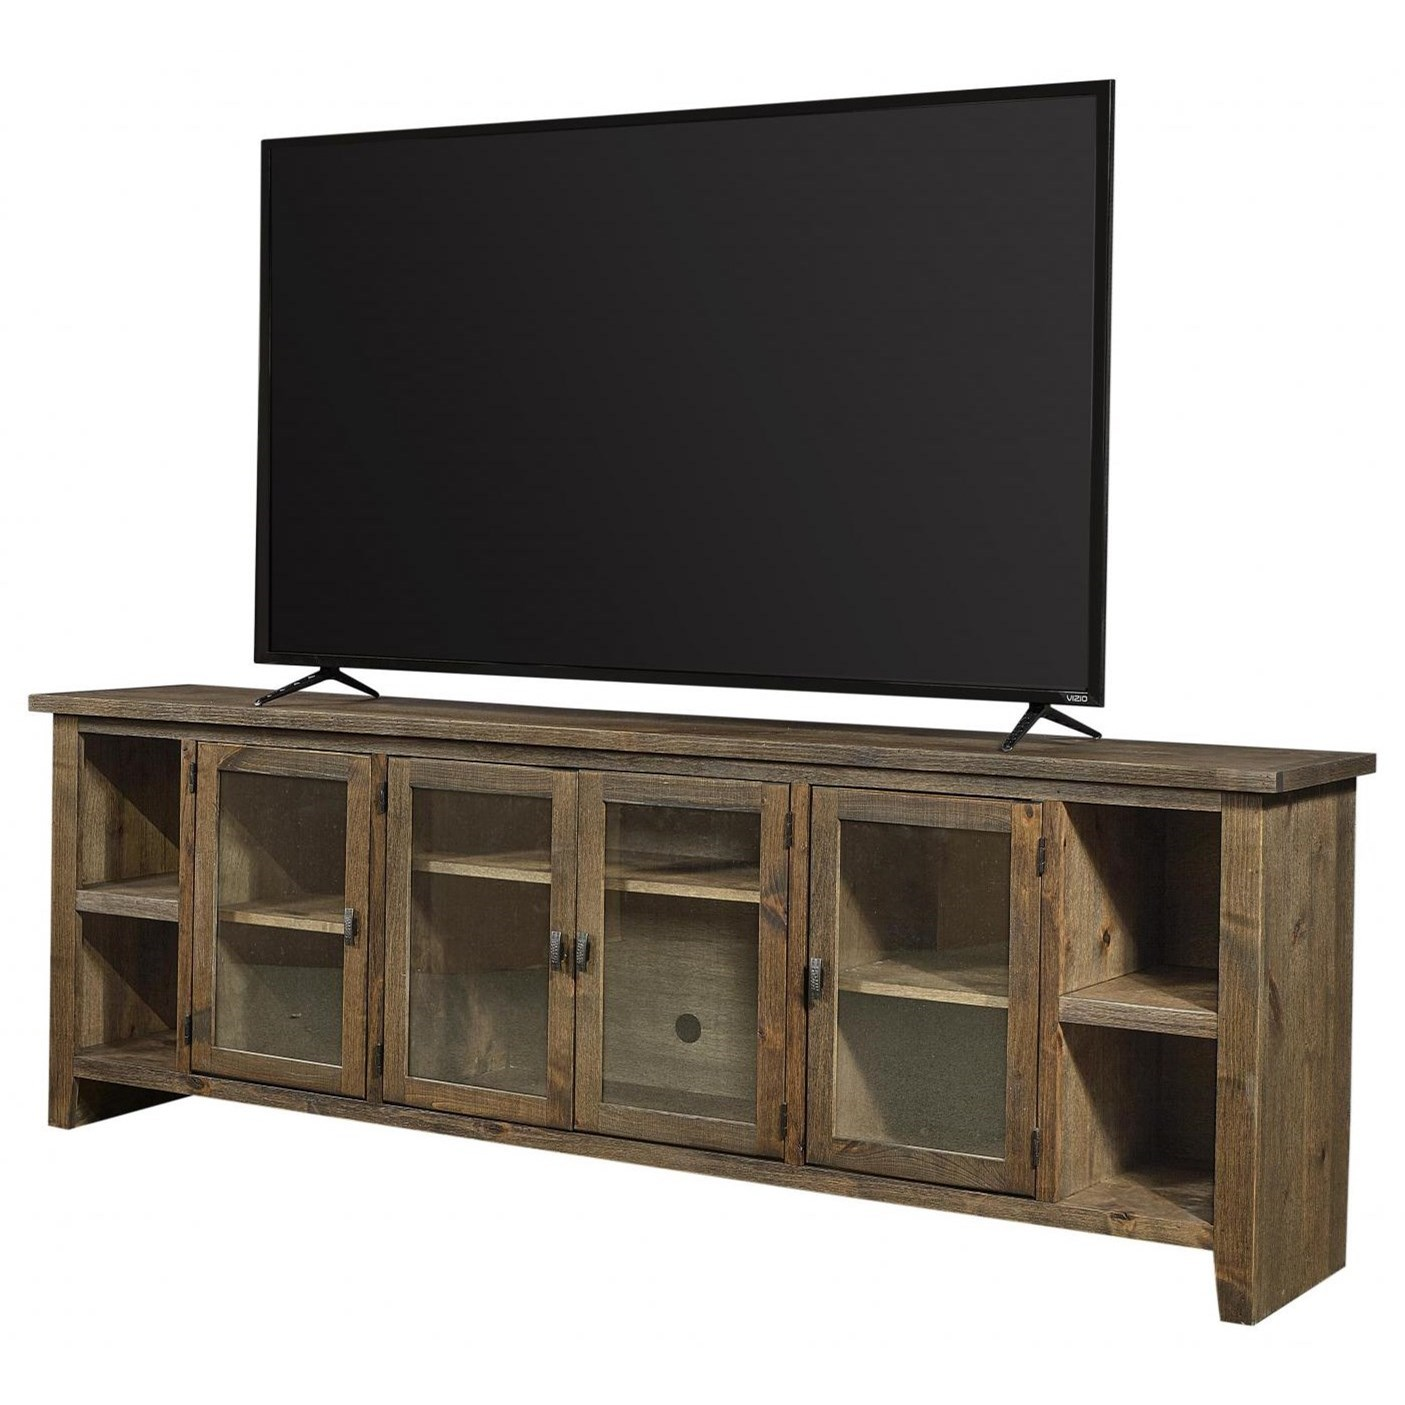 Alder Grove TV Stand by Aspenhome at Stoney Creek Furniture